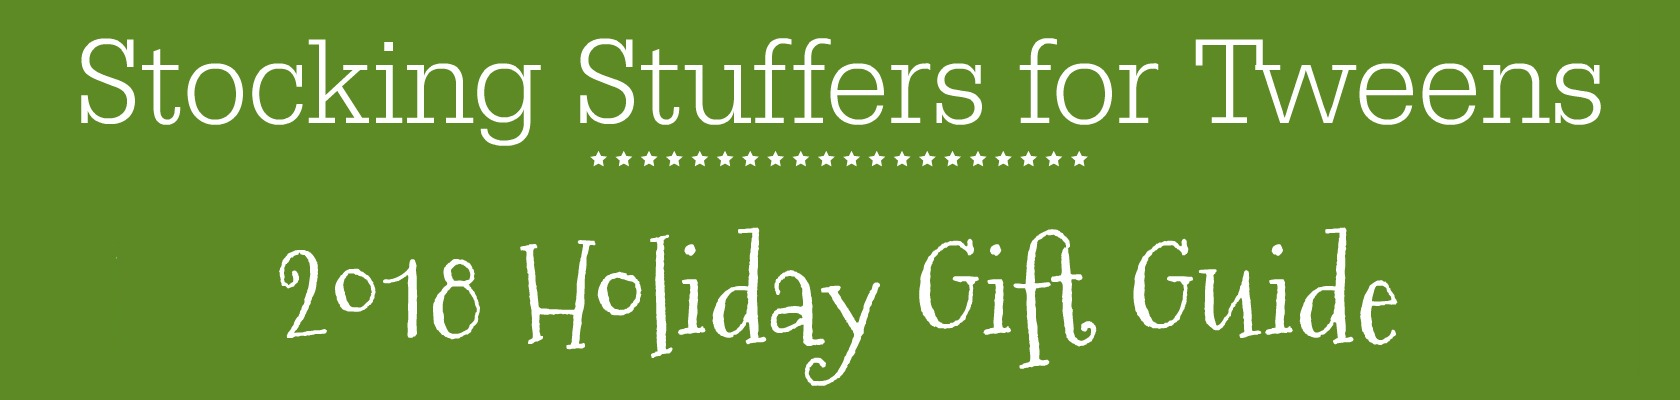 Holiday Gift Guide - Stocking Stuffers for Tweens